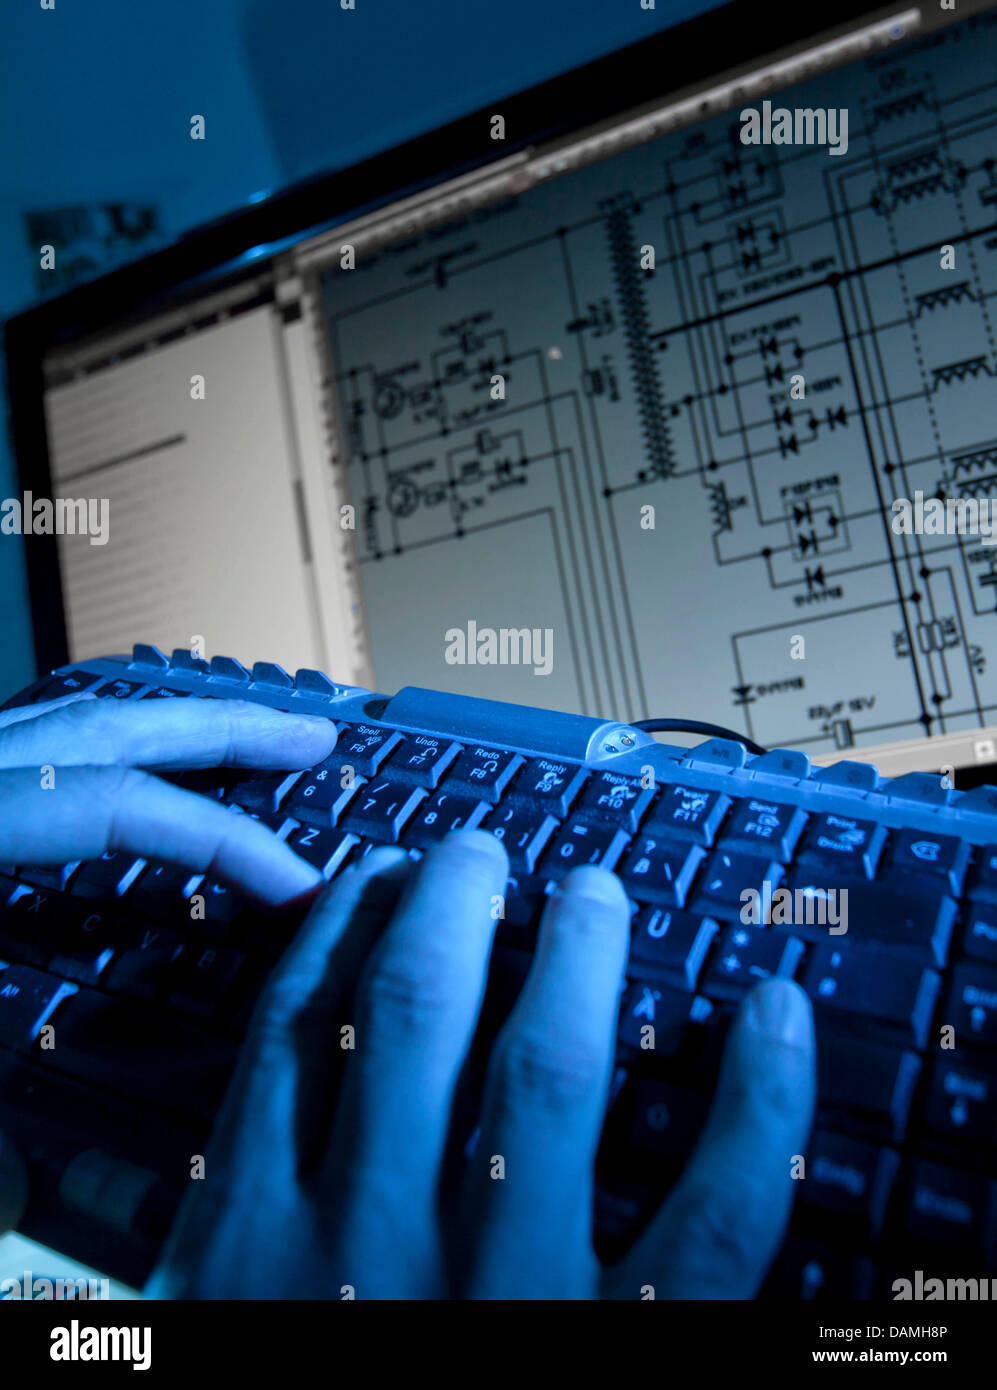 medium resolution of a man uses a keyboard next to a circuit diagram in frankfurt am main germany 16 june 2011 german minister of the interior hans peter friedrich opened the